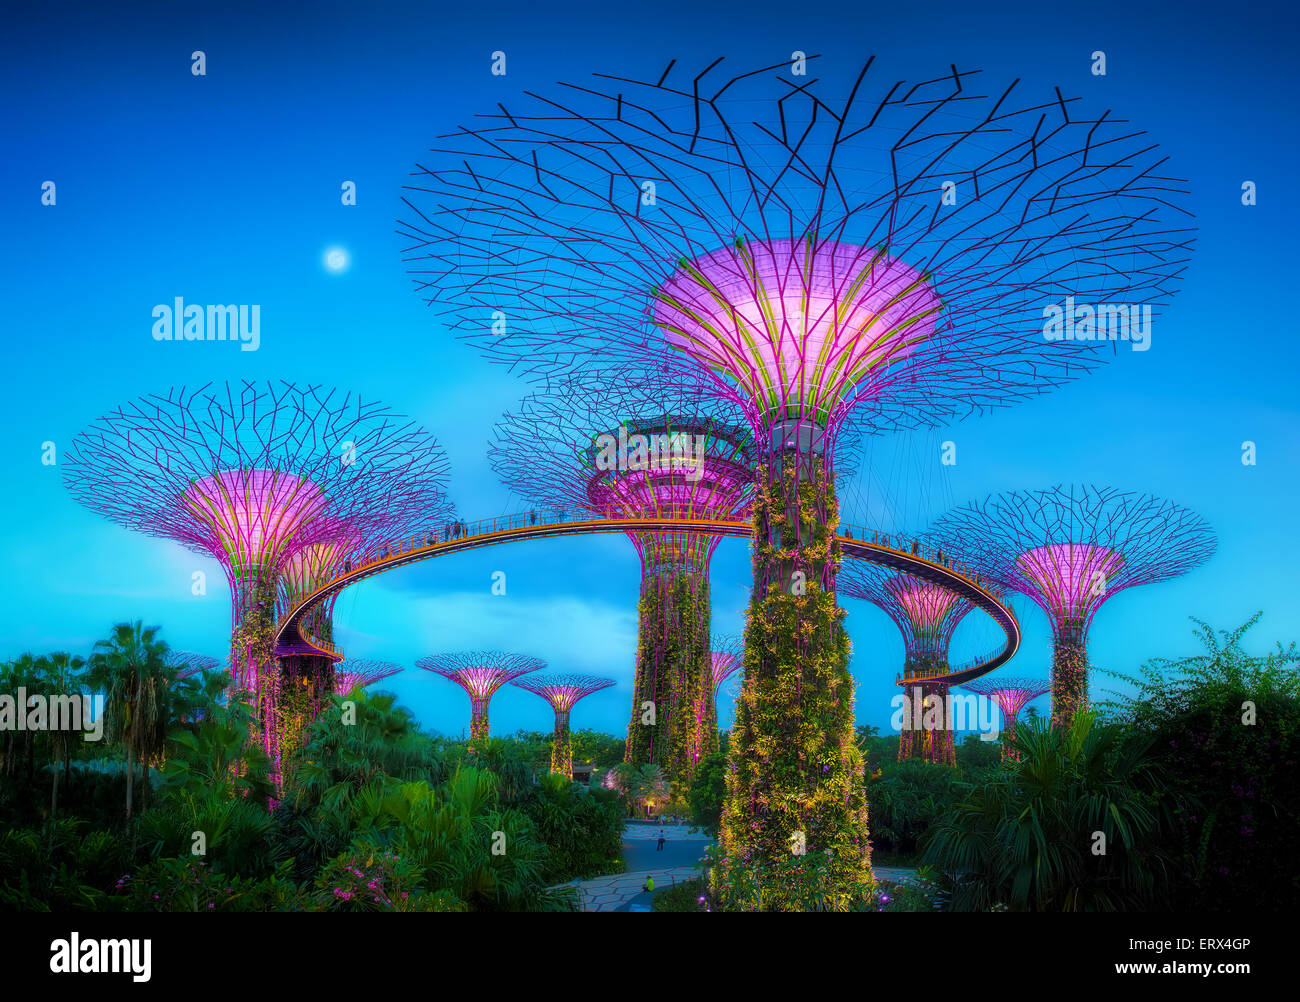 SINGAPORE-JUN 1: Evening view of The Supertree Grove at Gardens by the Bay on Jun 1, 2015 in Singapore. - Stock Image